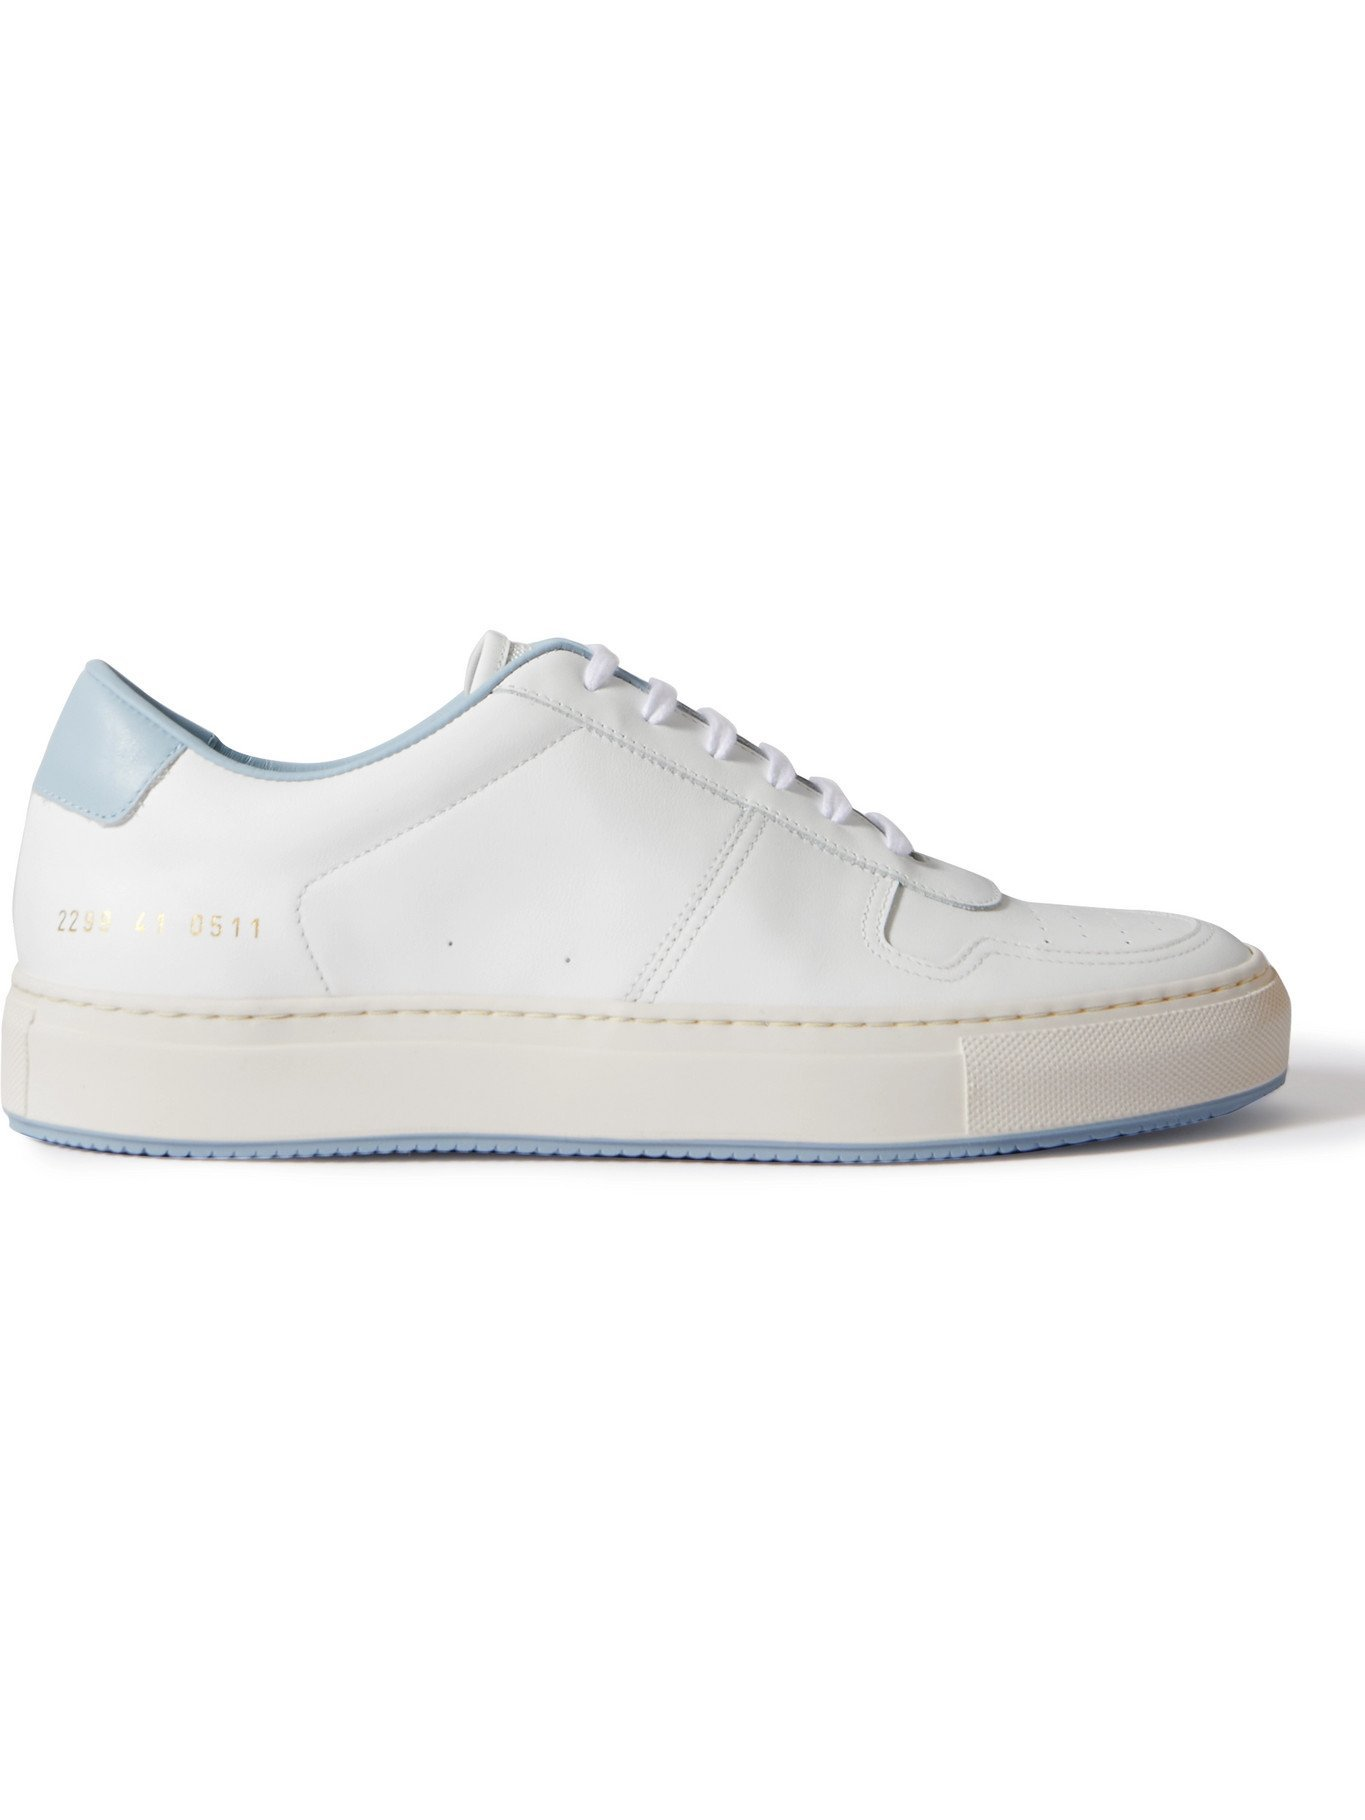 COMMON PROJECTS - BBall '90 Leather Sneakers - White